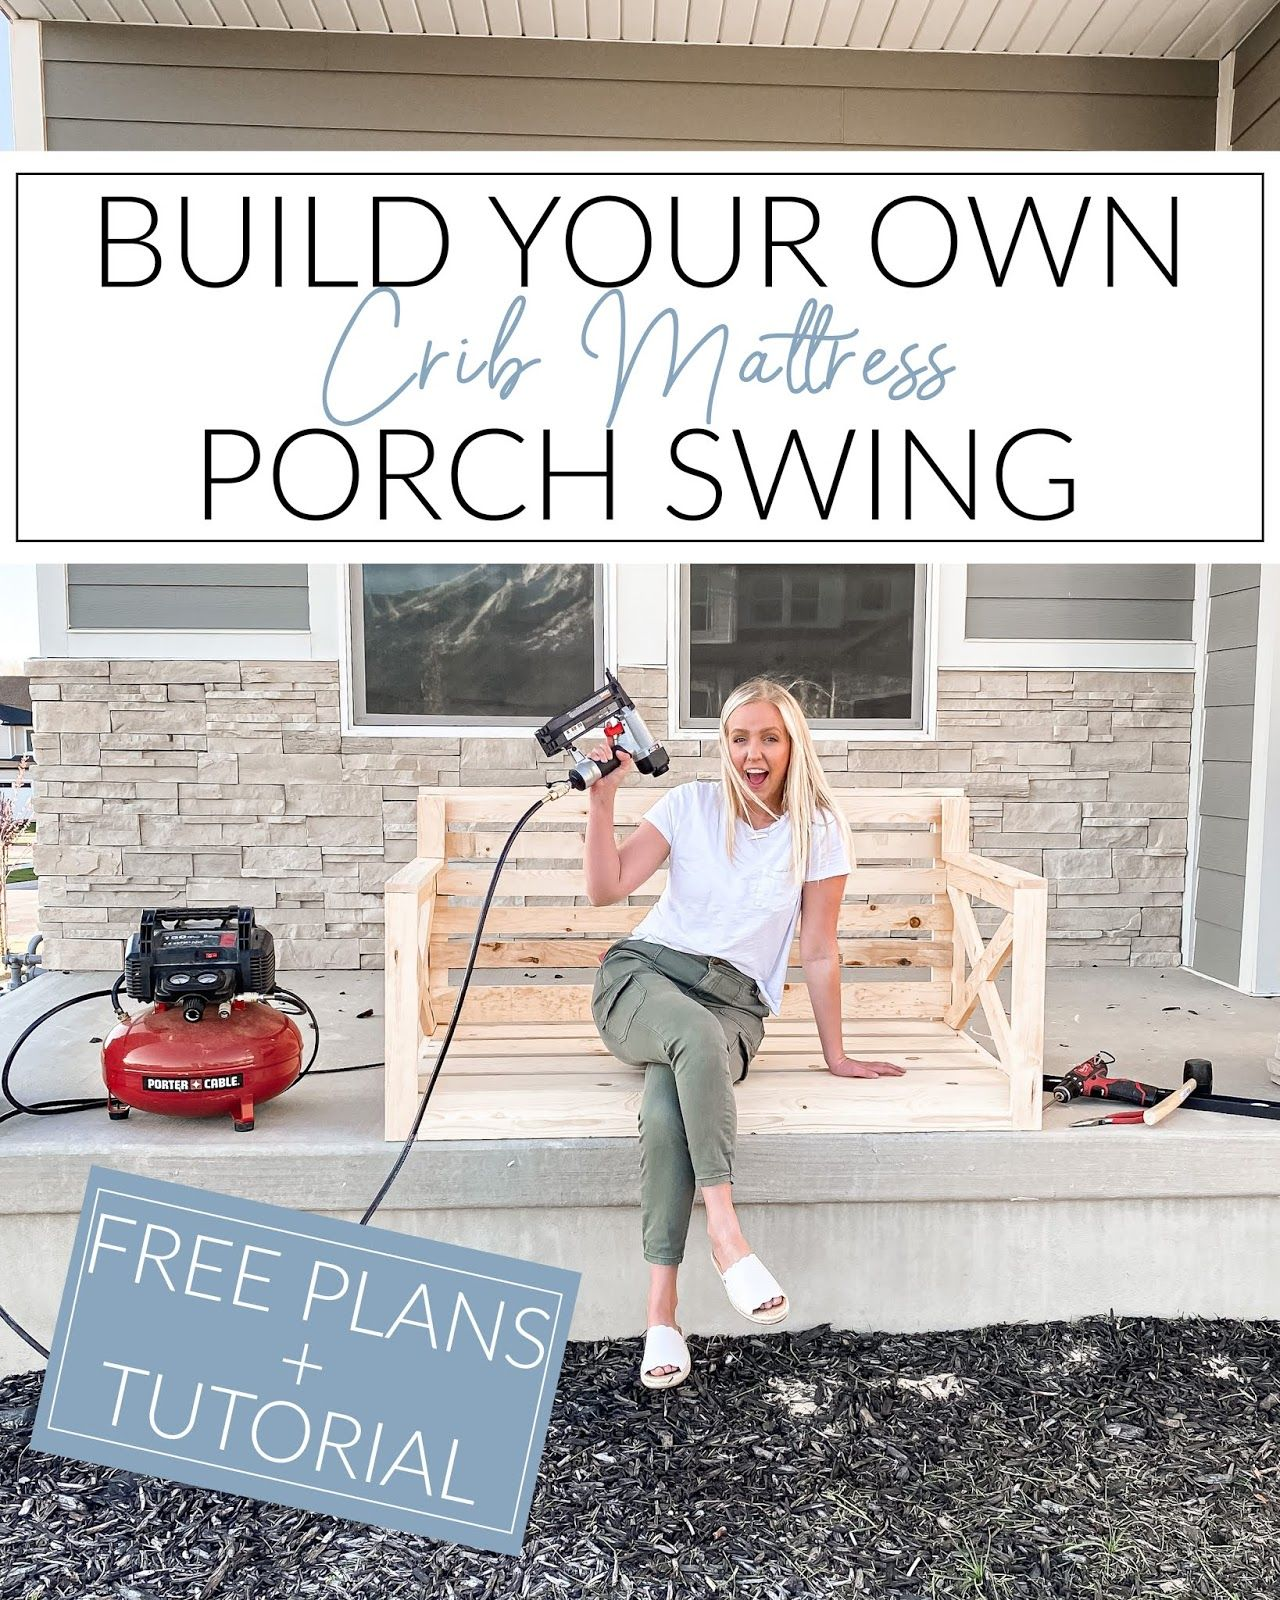 Hunters Of Happiness Build Your Own Crib Mattress Porch Swing In 2020 Porch Swing Diy Porch Swing Diy Porch Swing Plans